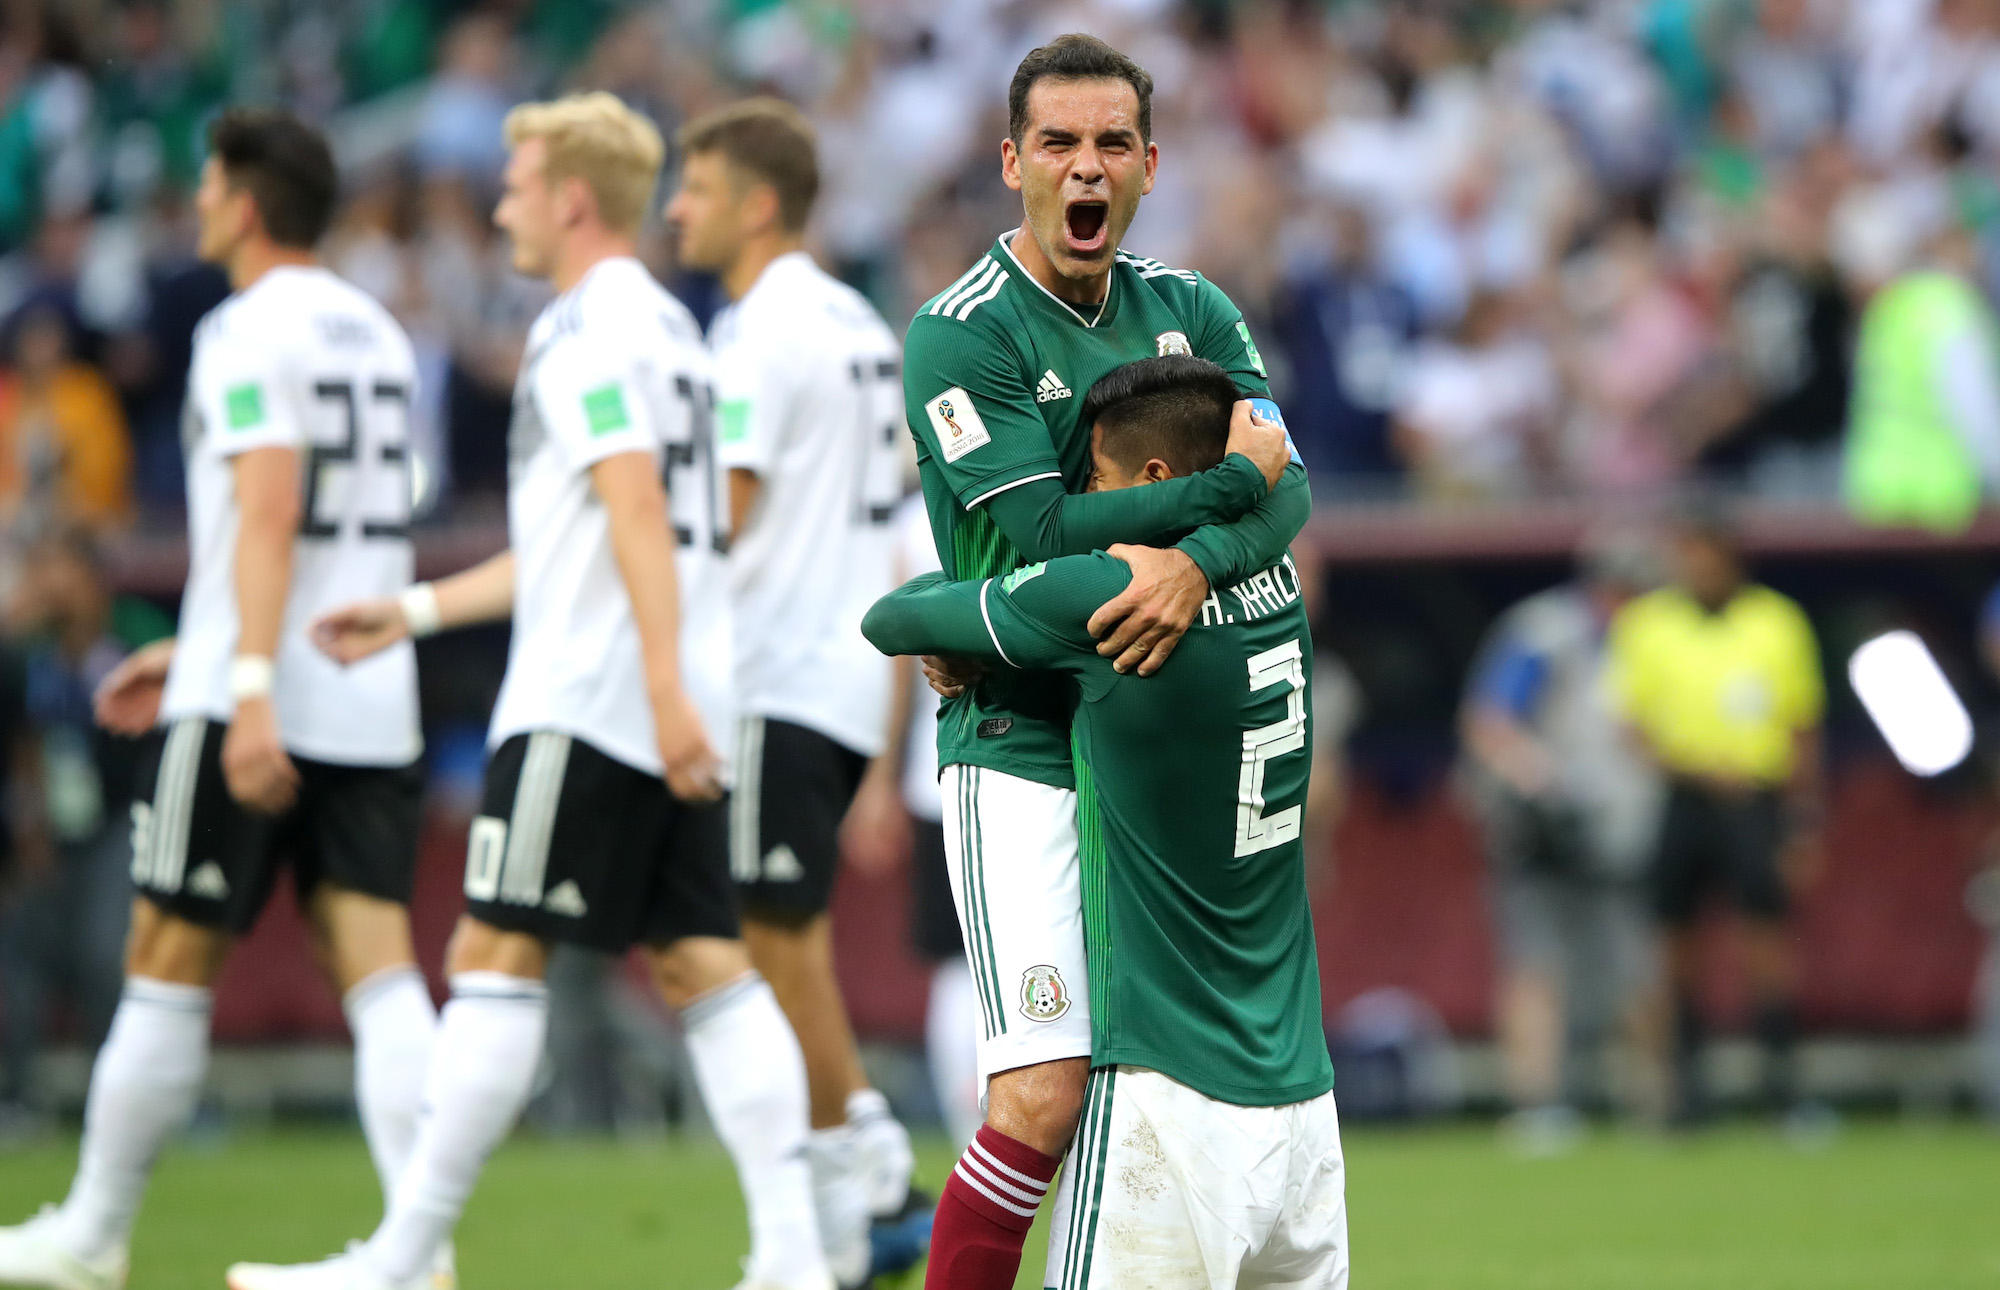 656c940cb35 Mexico shocks reigning World Cup champs Germany 1-0 - CBS News